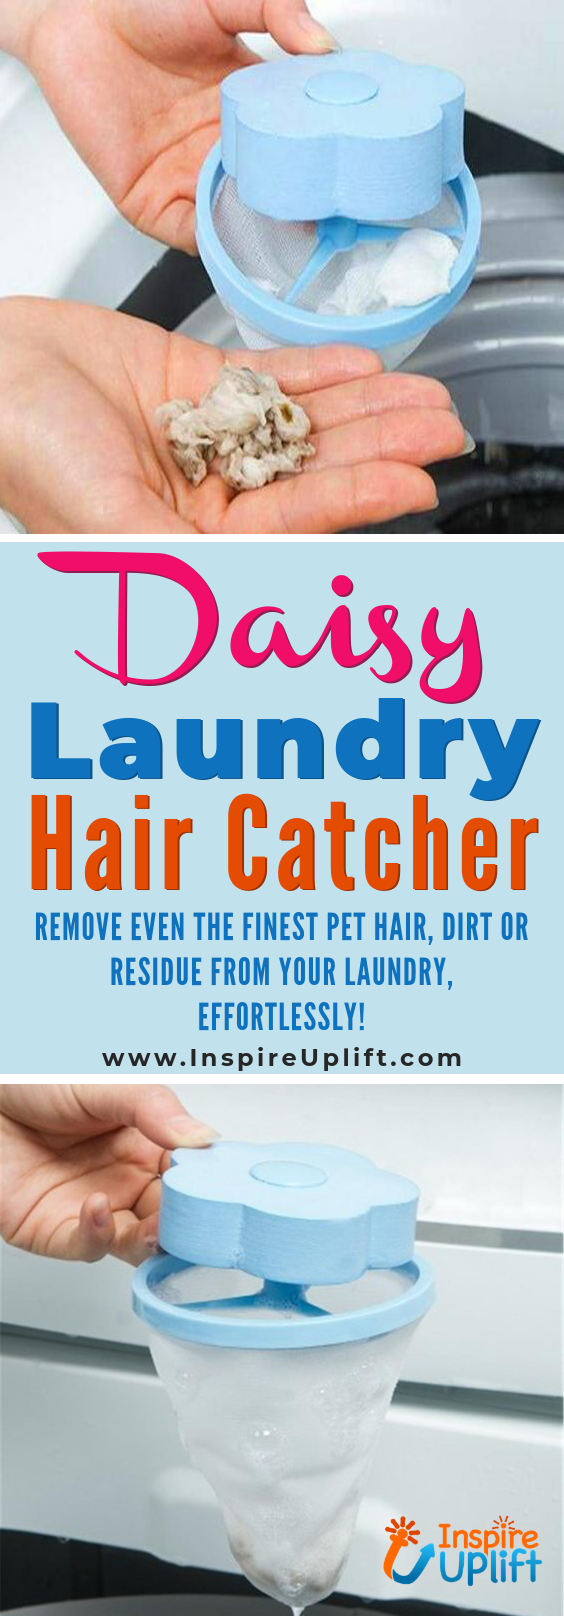 Simply Toss The Daisy Laundry Hair Catcher Into Your Washing